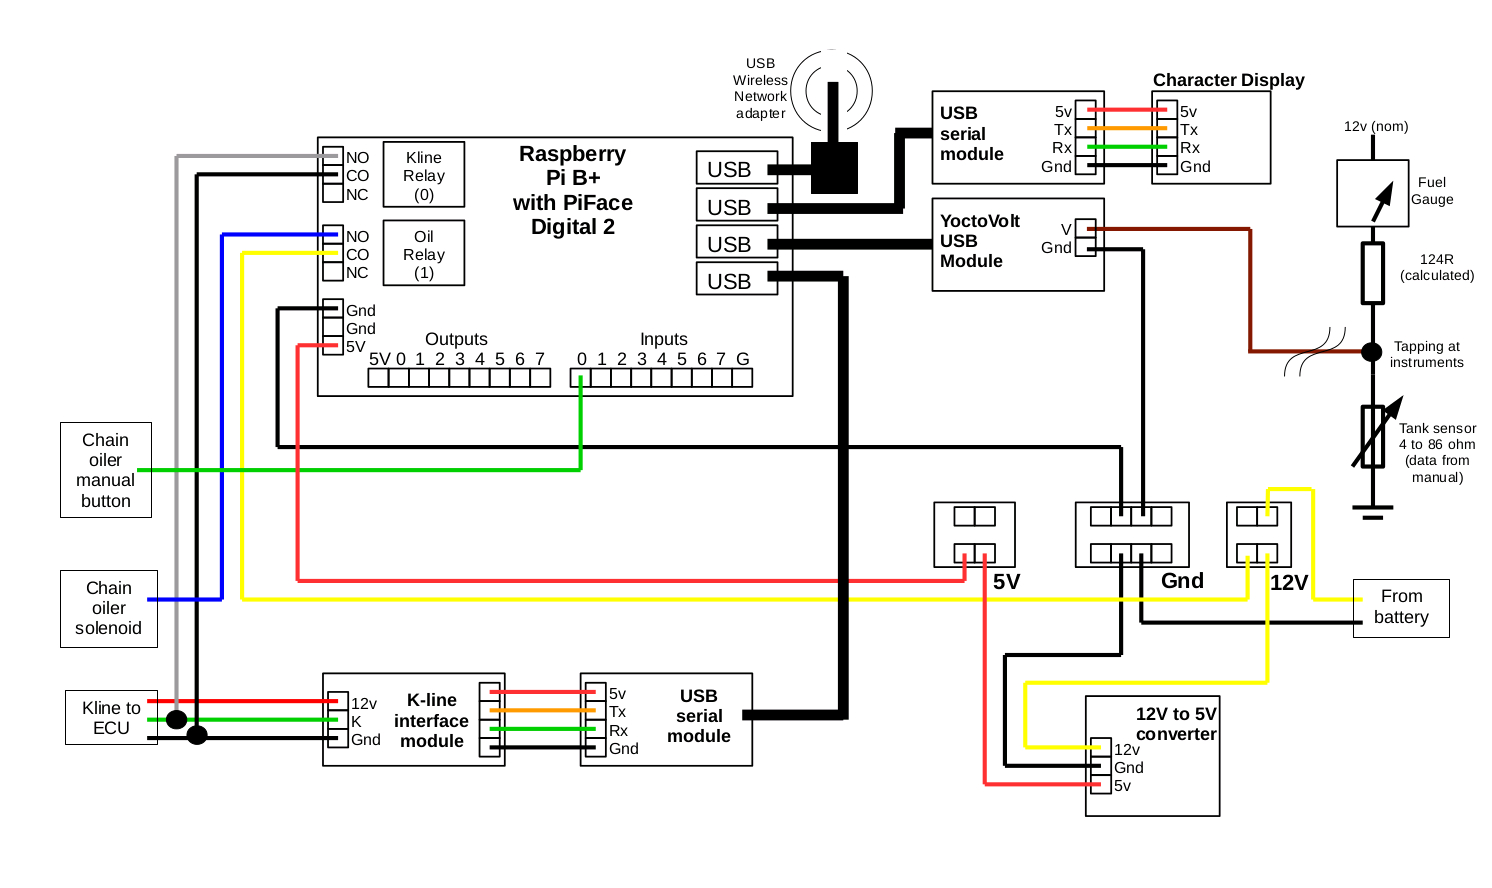 Odb2 To Usb Wiring Diagram | Wiring Diagram - Usb To Obd2 Cable Wiring Diagram